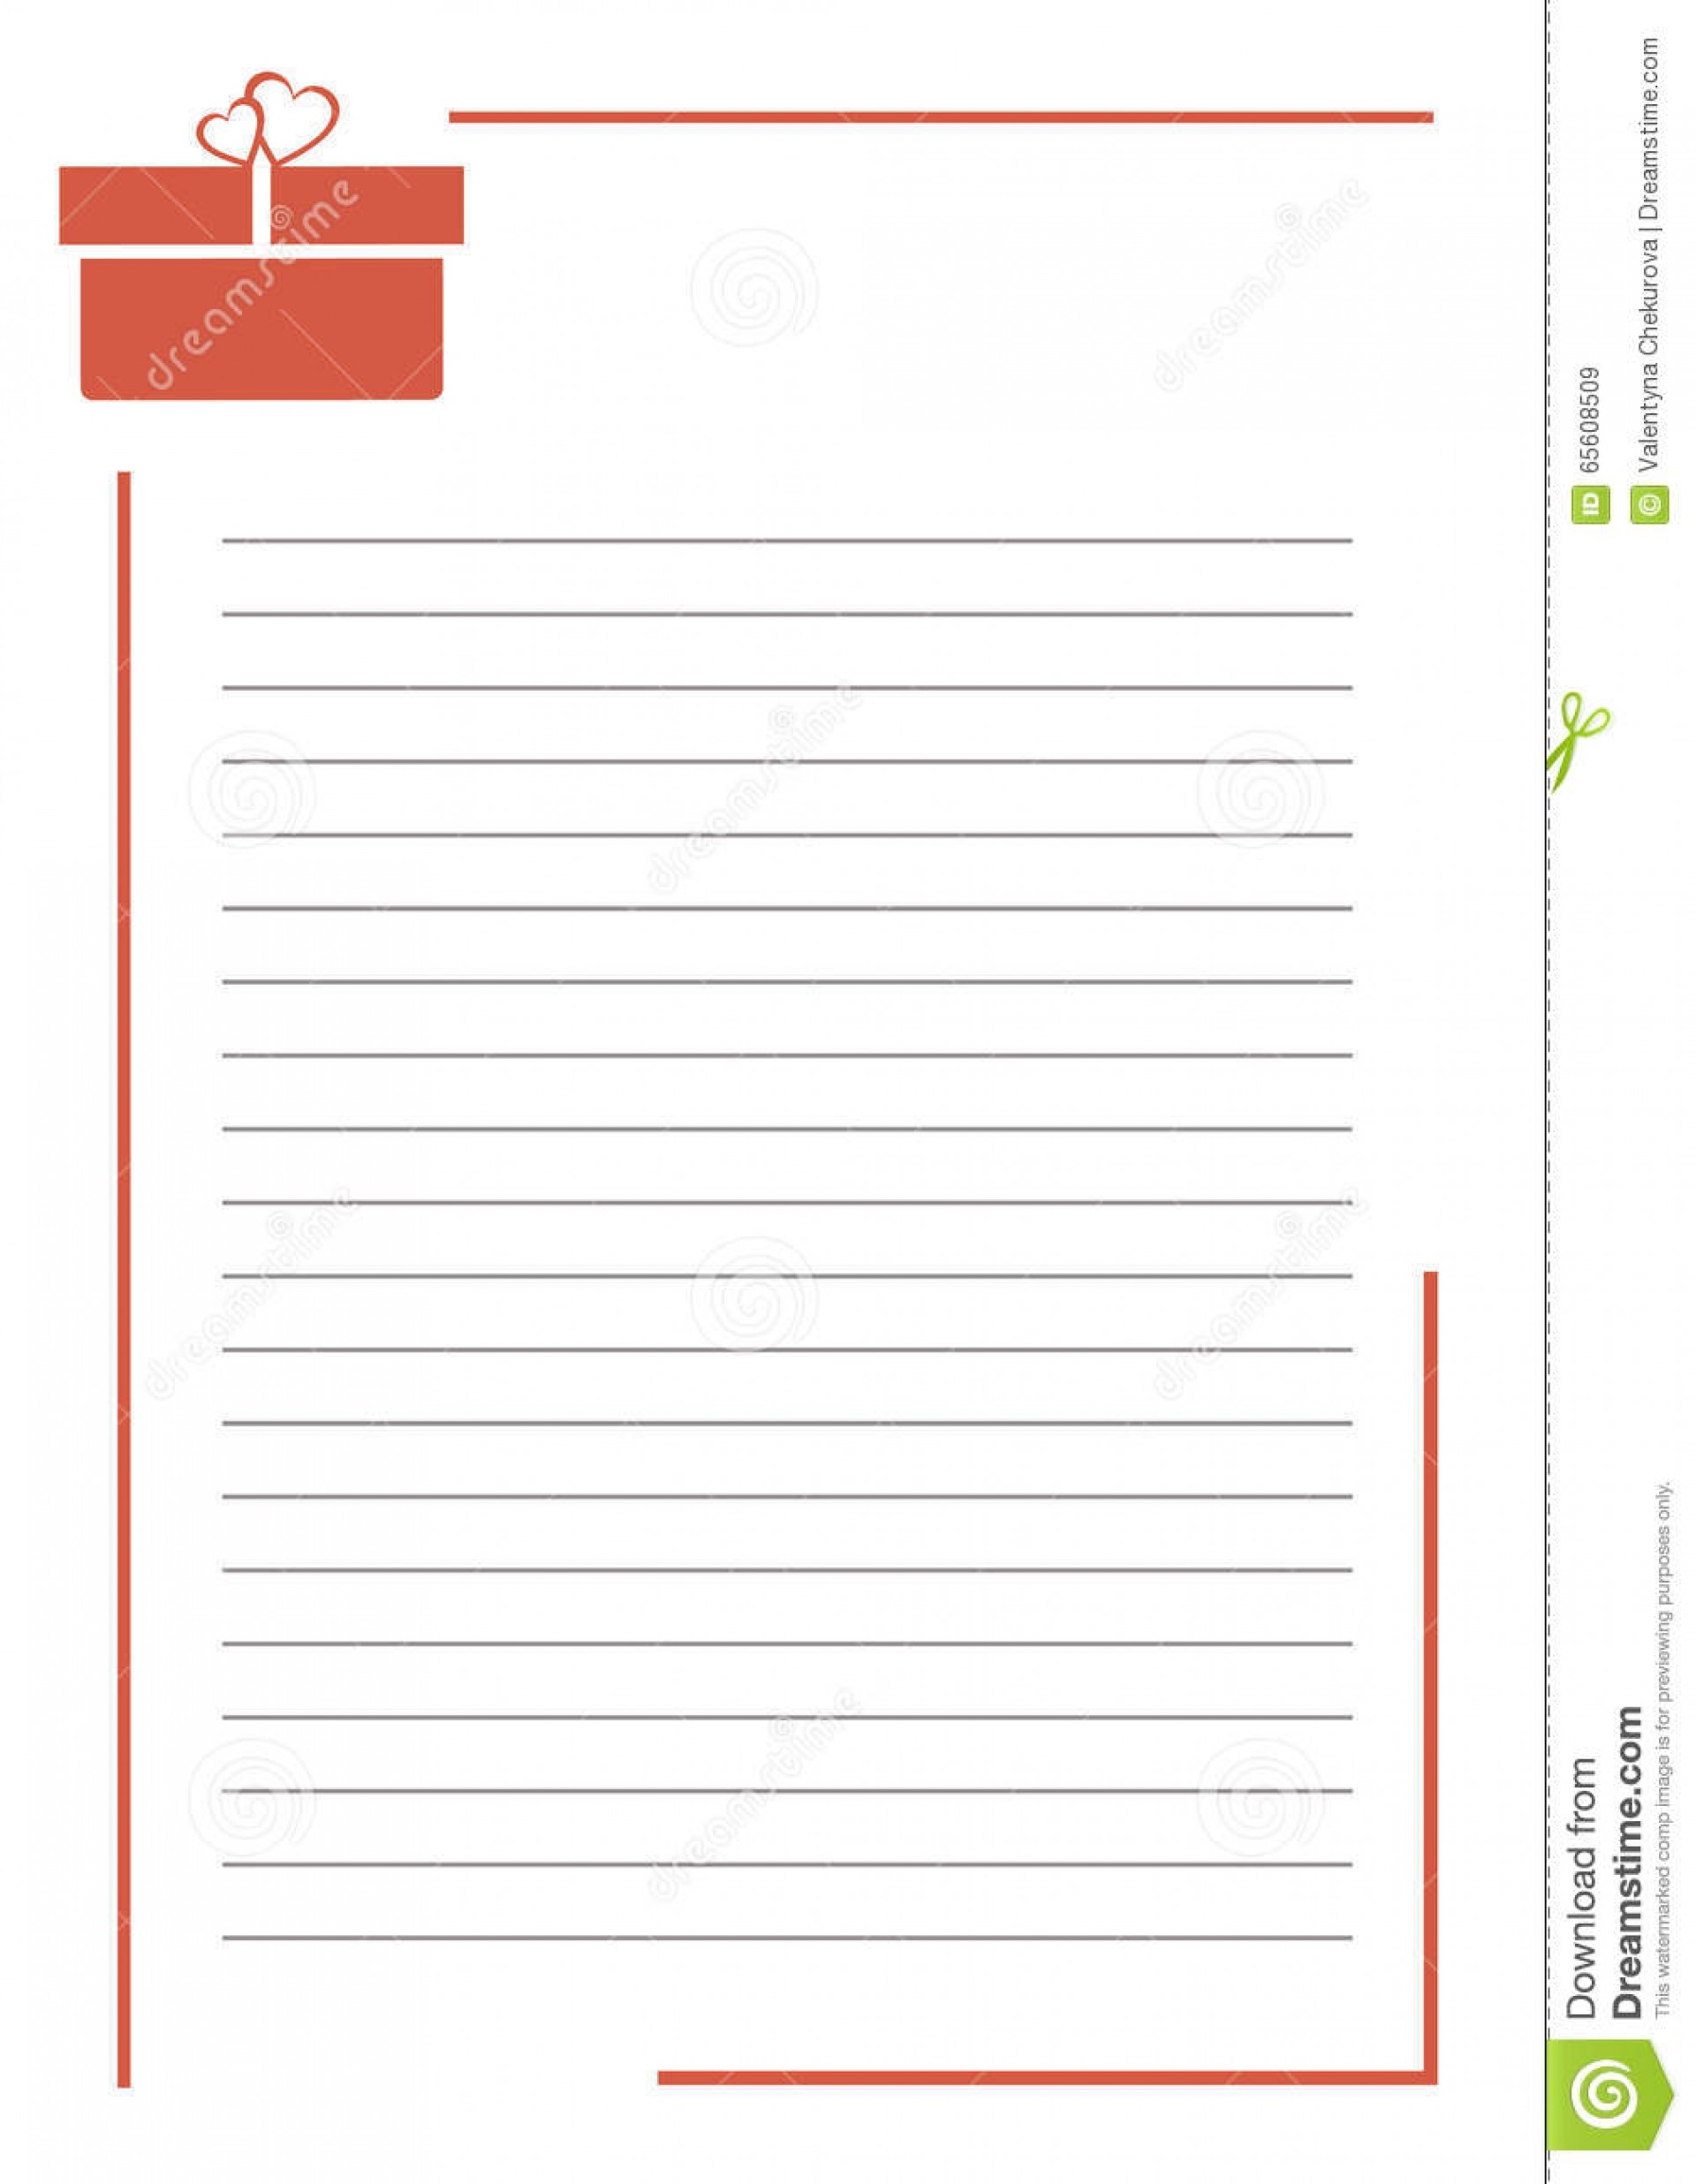 005 Vector Blank Letter Greeting Card White Paper Form Red Gift Box Lines Border Format Size Research Note Cards Examples For Unique A Example Template 1920